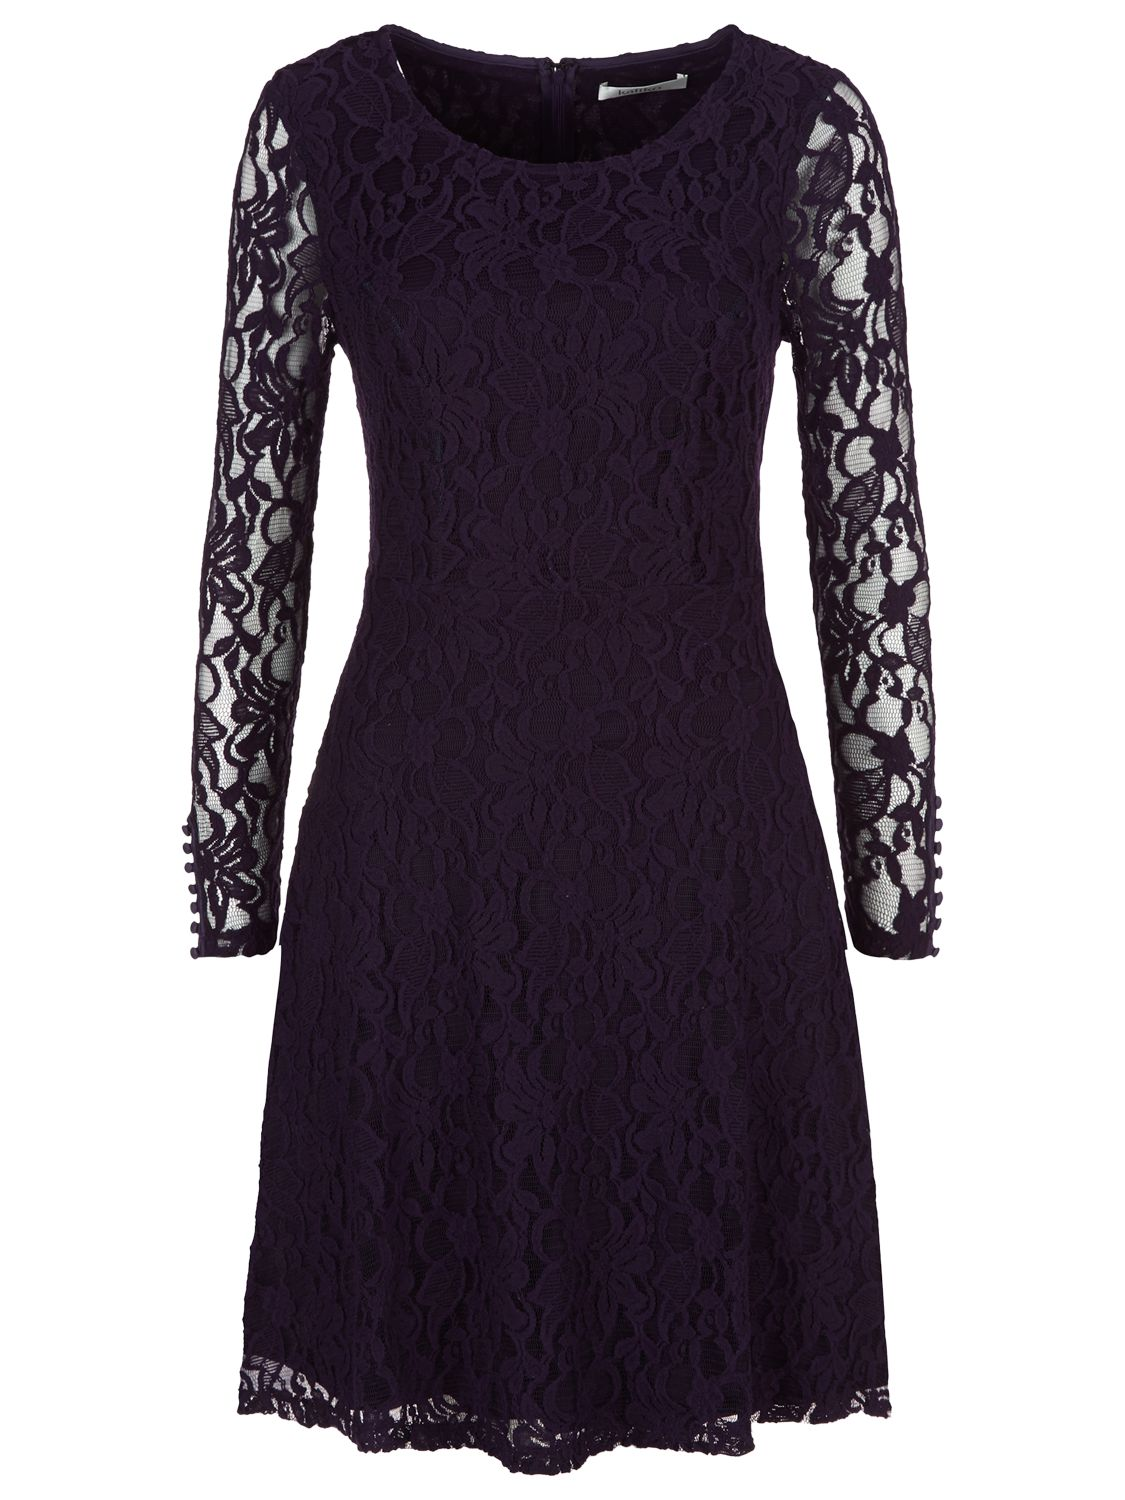 kaliko lace skater dress blackcurrant, kaliko, lace, skater, dress, blackcurrant, 20|14|18|12|16, clearance, womenswear offers, womens dresses offers, special offers, 20% off selected kaliko, new years party offers, women, plus size, inactive womenswear, new reductions, party outfits, lace dress, womens dresses, 1654245